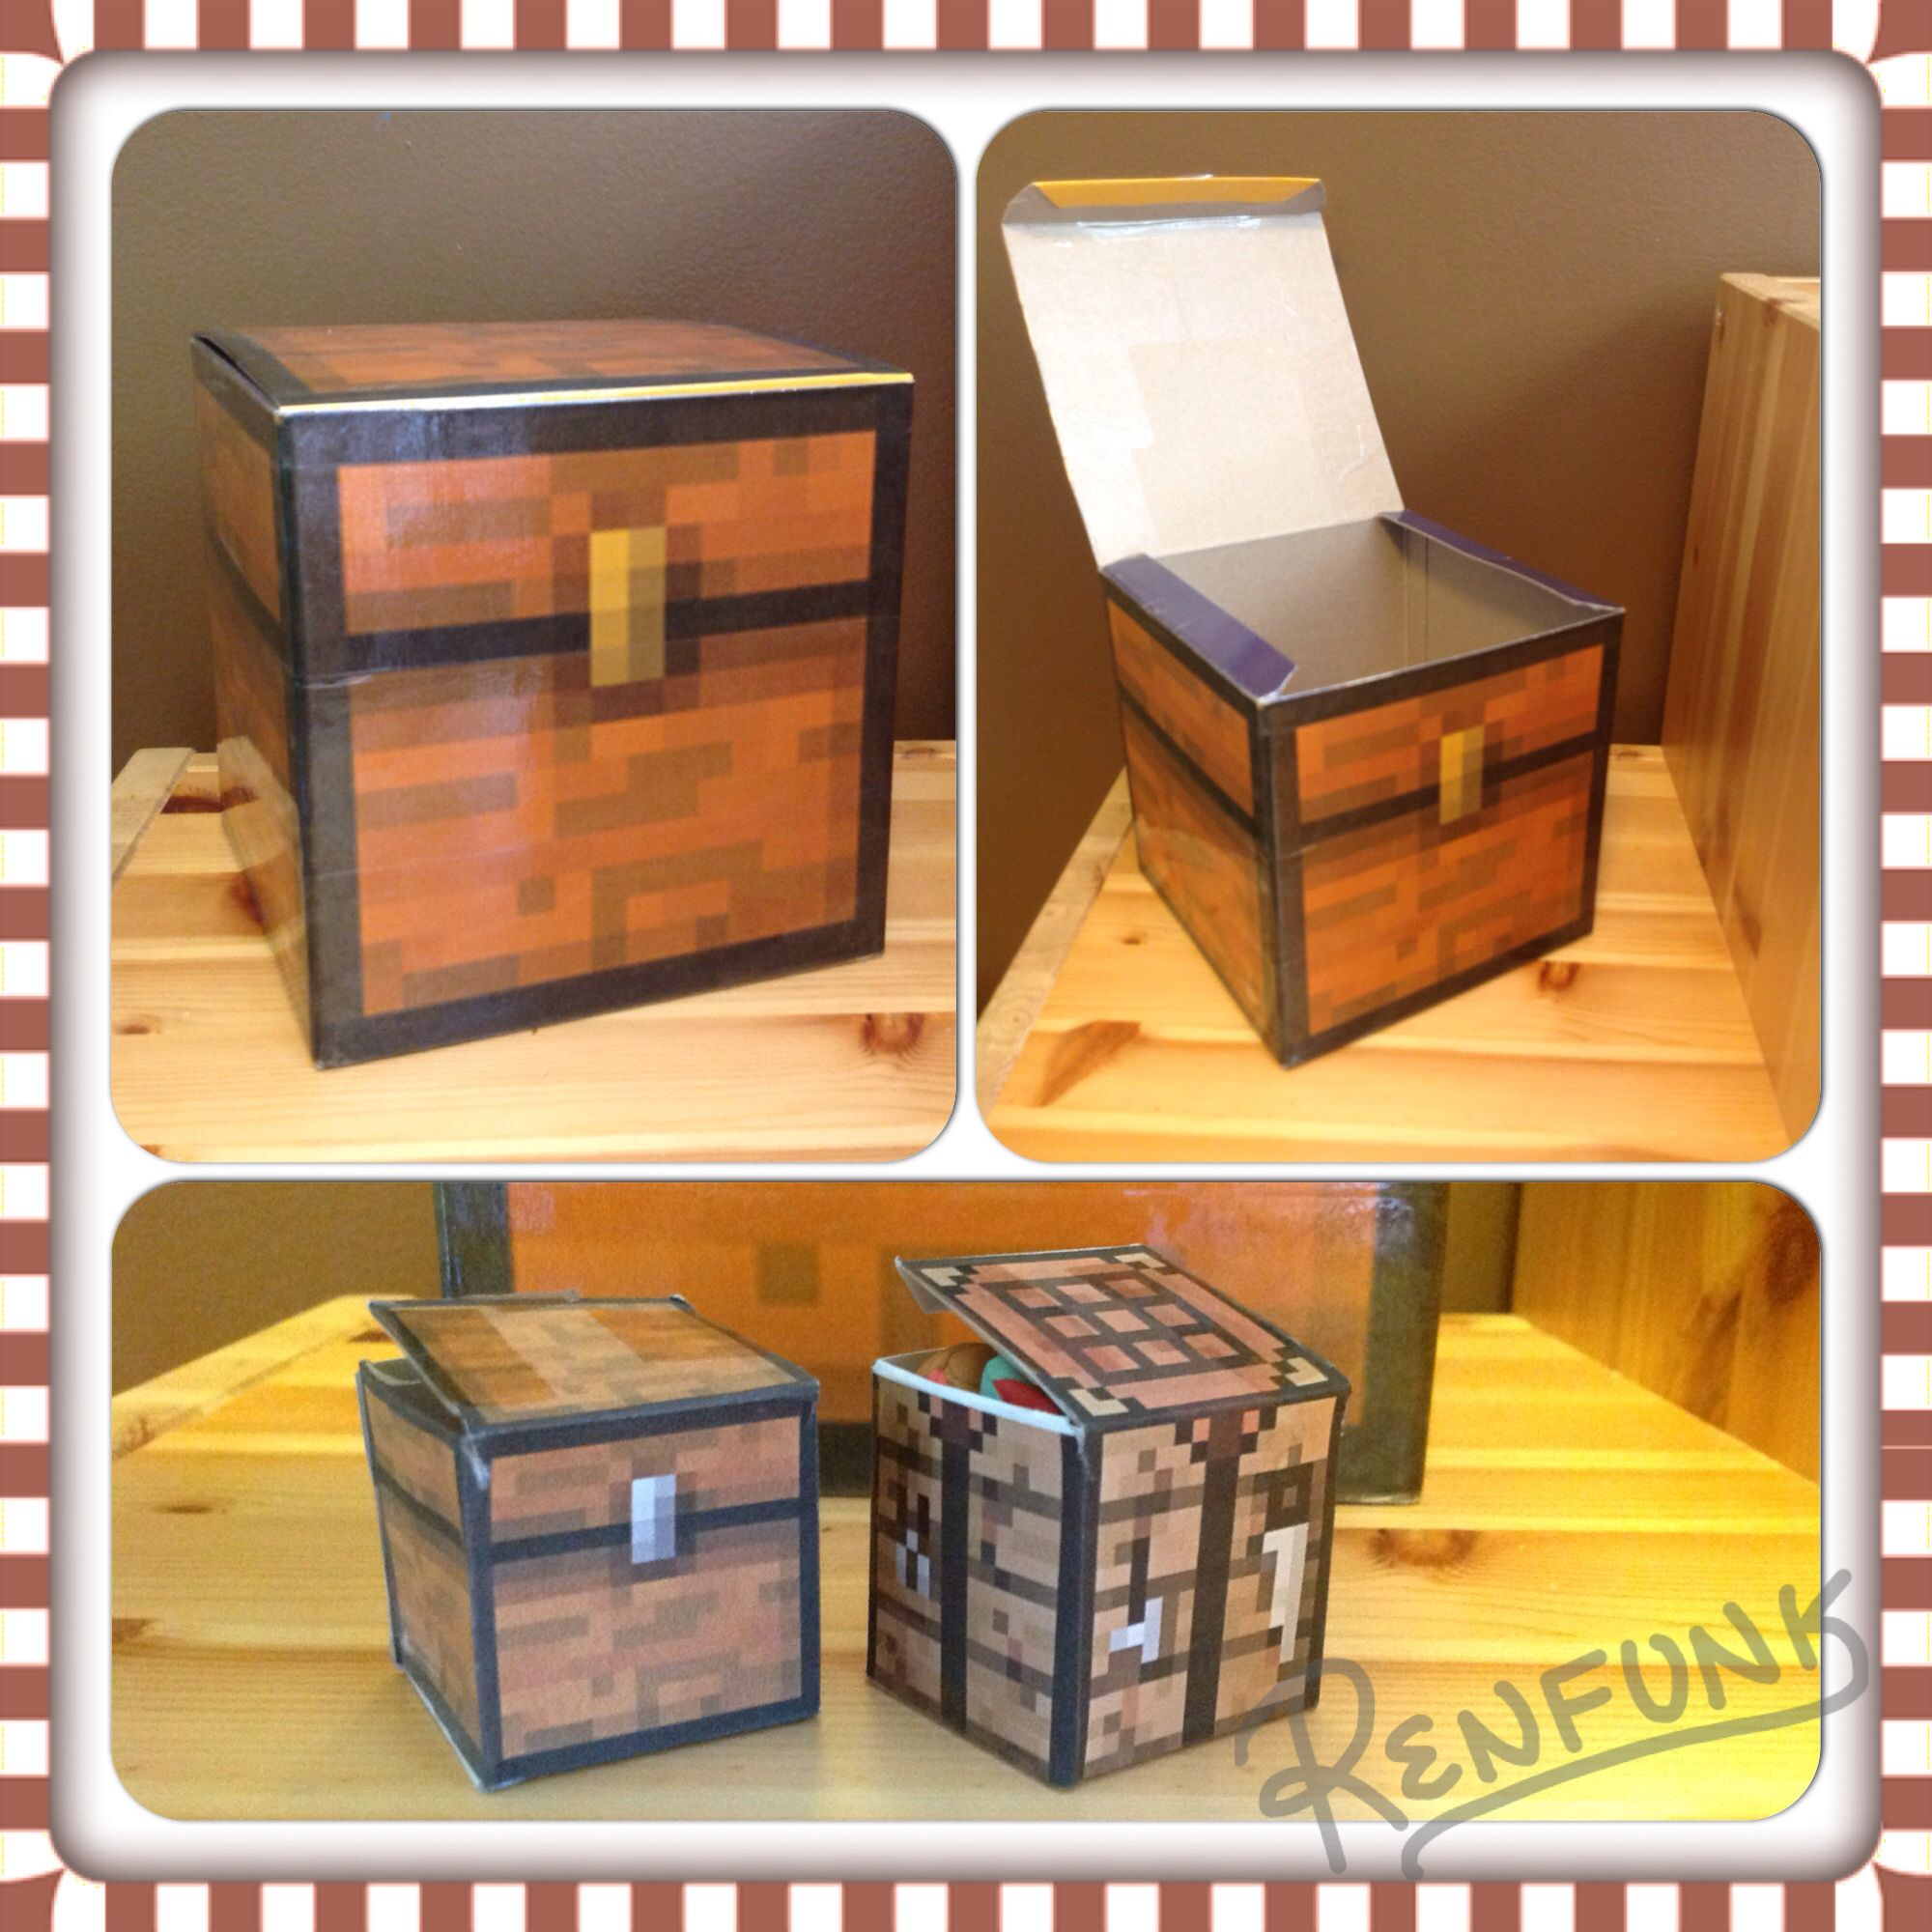 Minecraft Paper Chest Craft Printed Chest Template Taped Over A Square Box Small Chest And Crafting Table Paper Video Game Rooms Craft Table Minecraft Theme